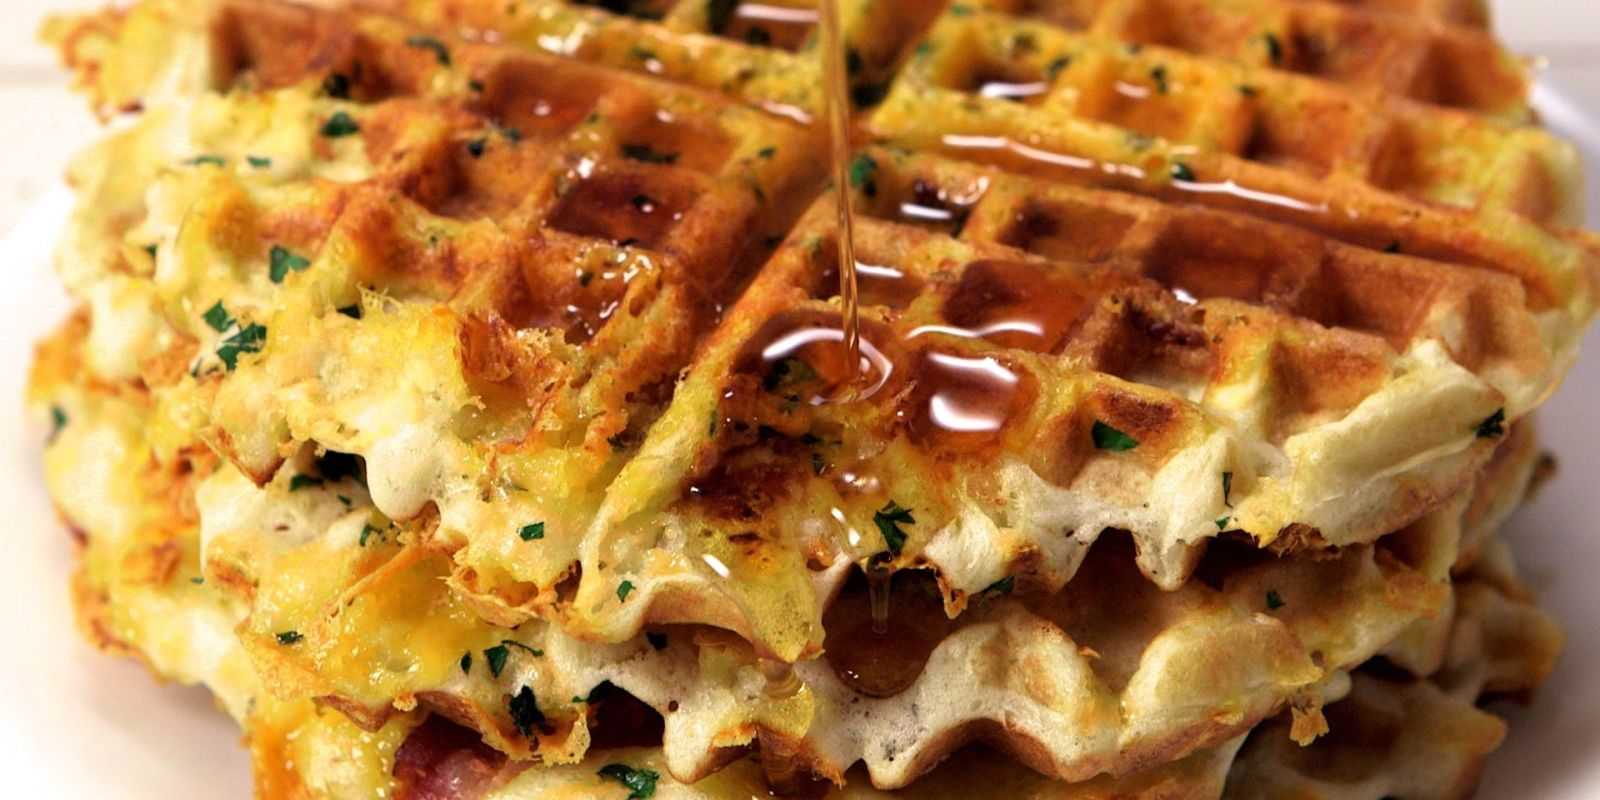 Bacon, Egg, And Cheese Stuffed Waffles